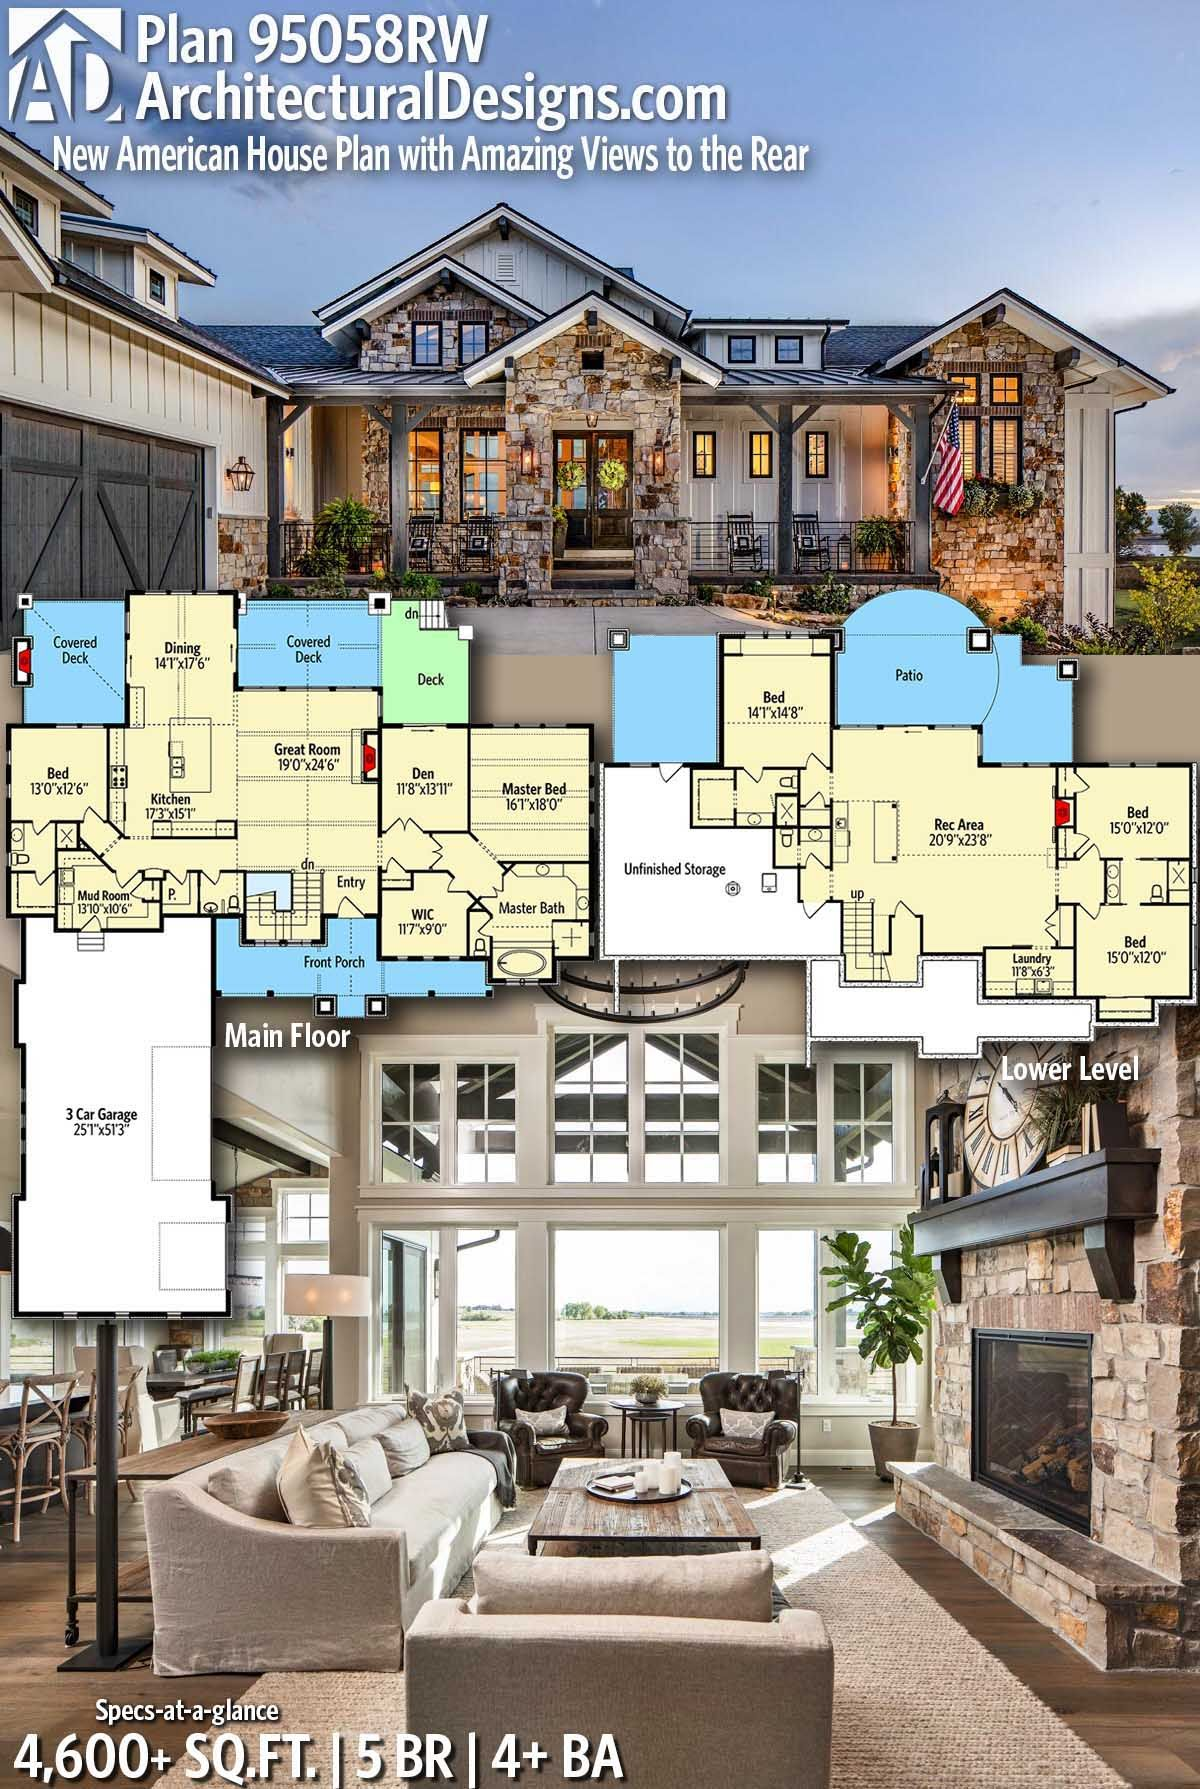 Plan 95058RW: New American House Plan with Amazing Views ...